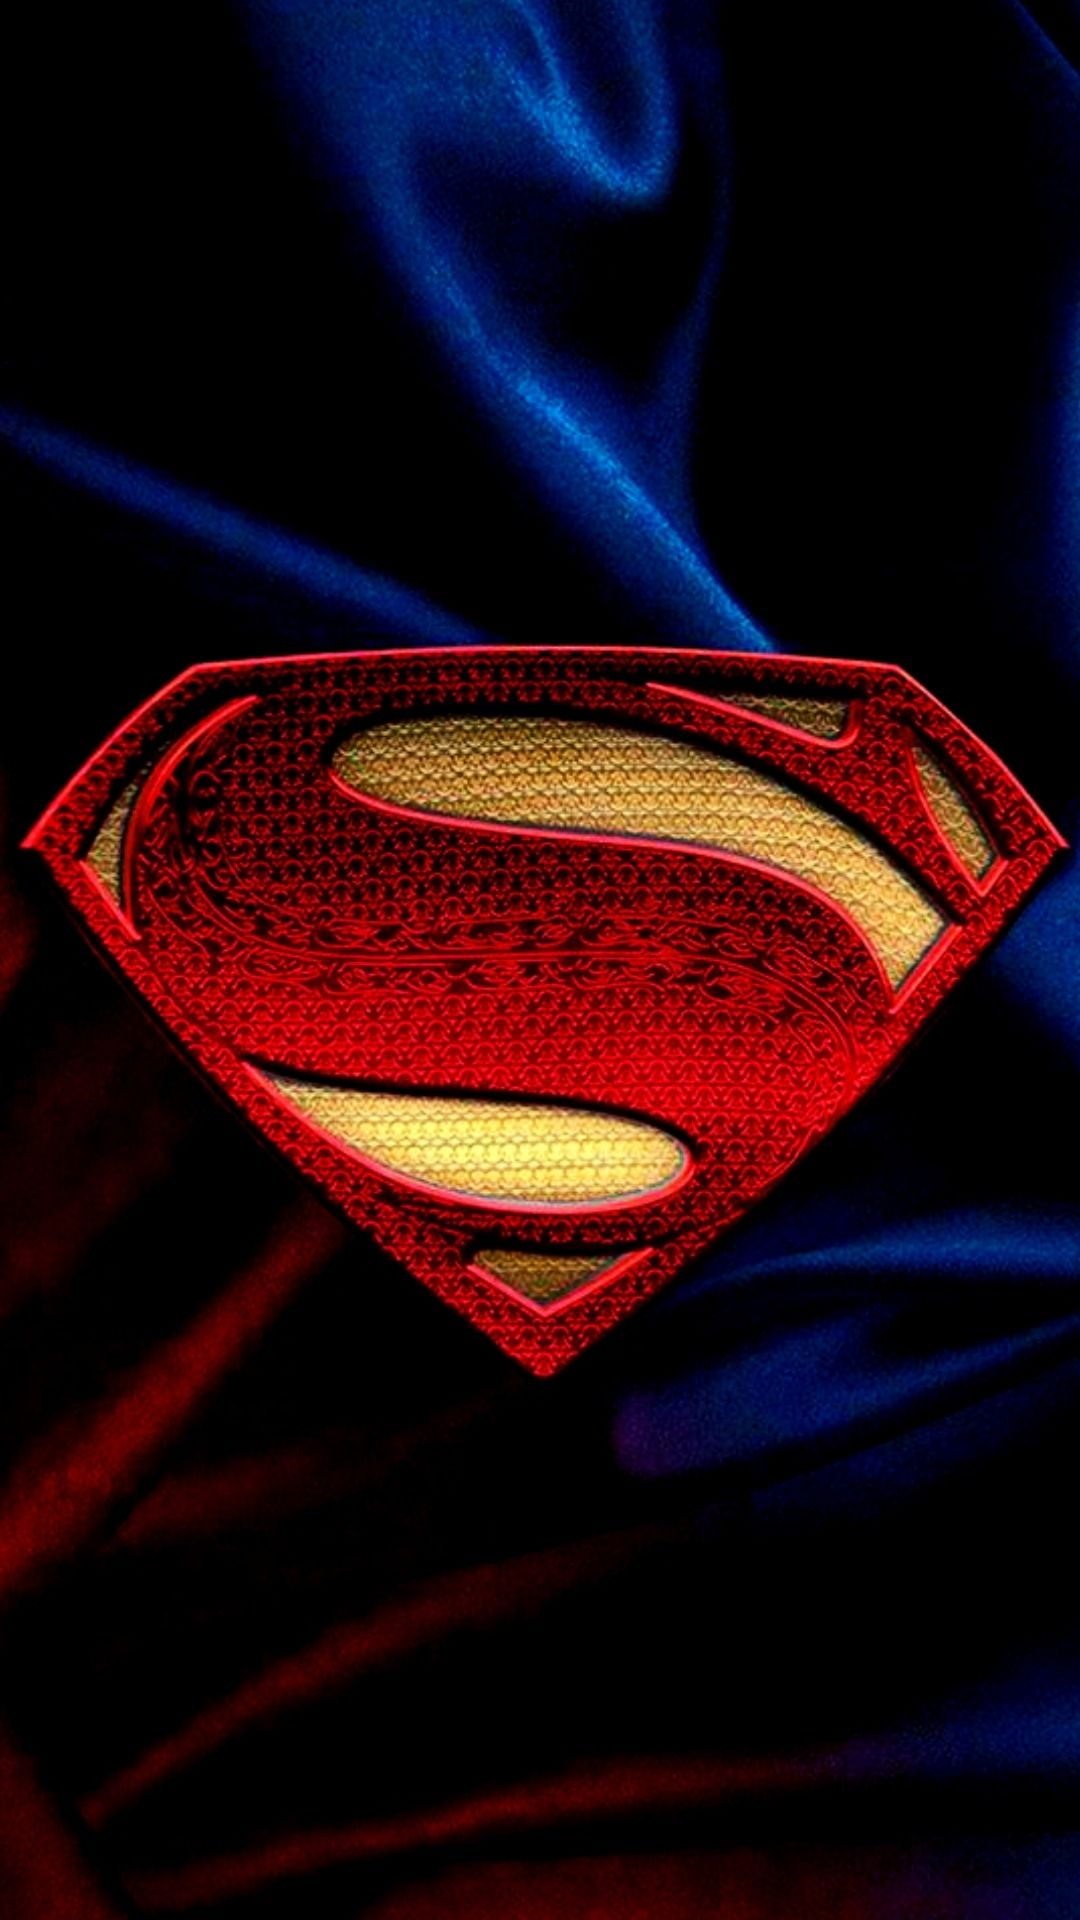 Best Superman HD wallpapers Only for iPhone users